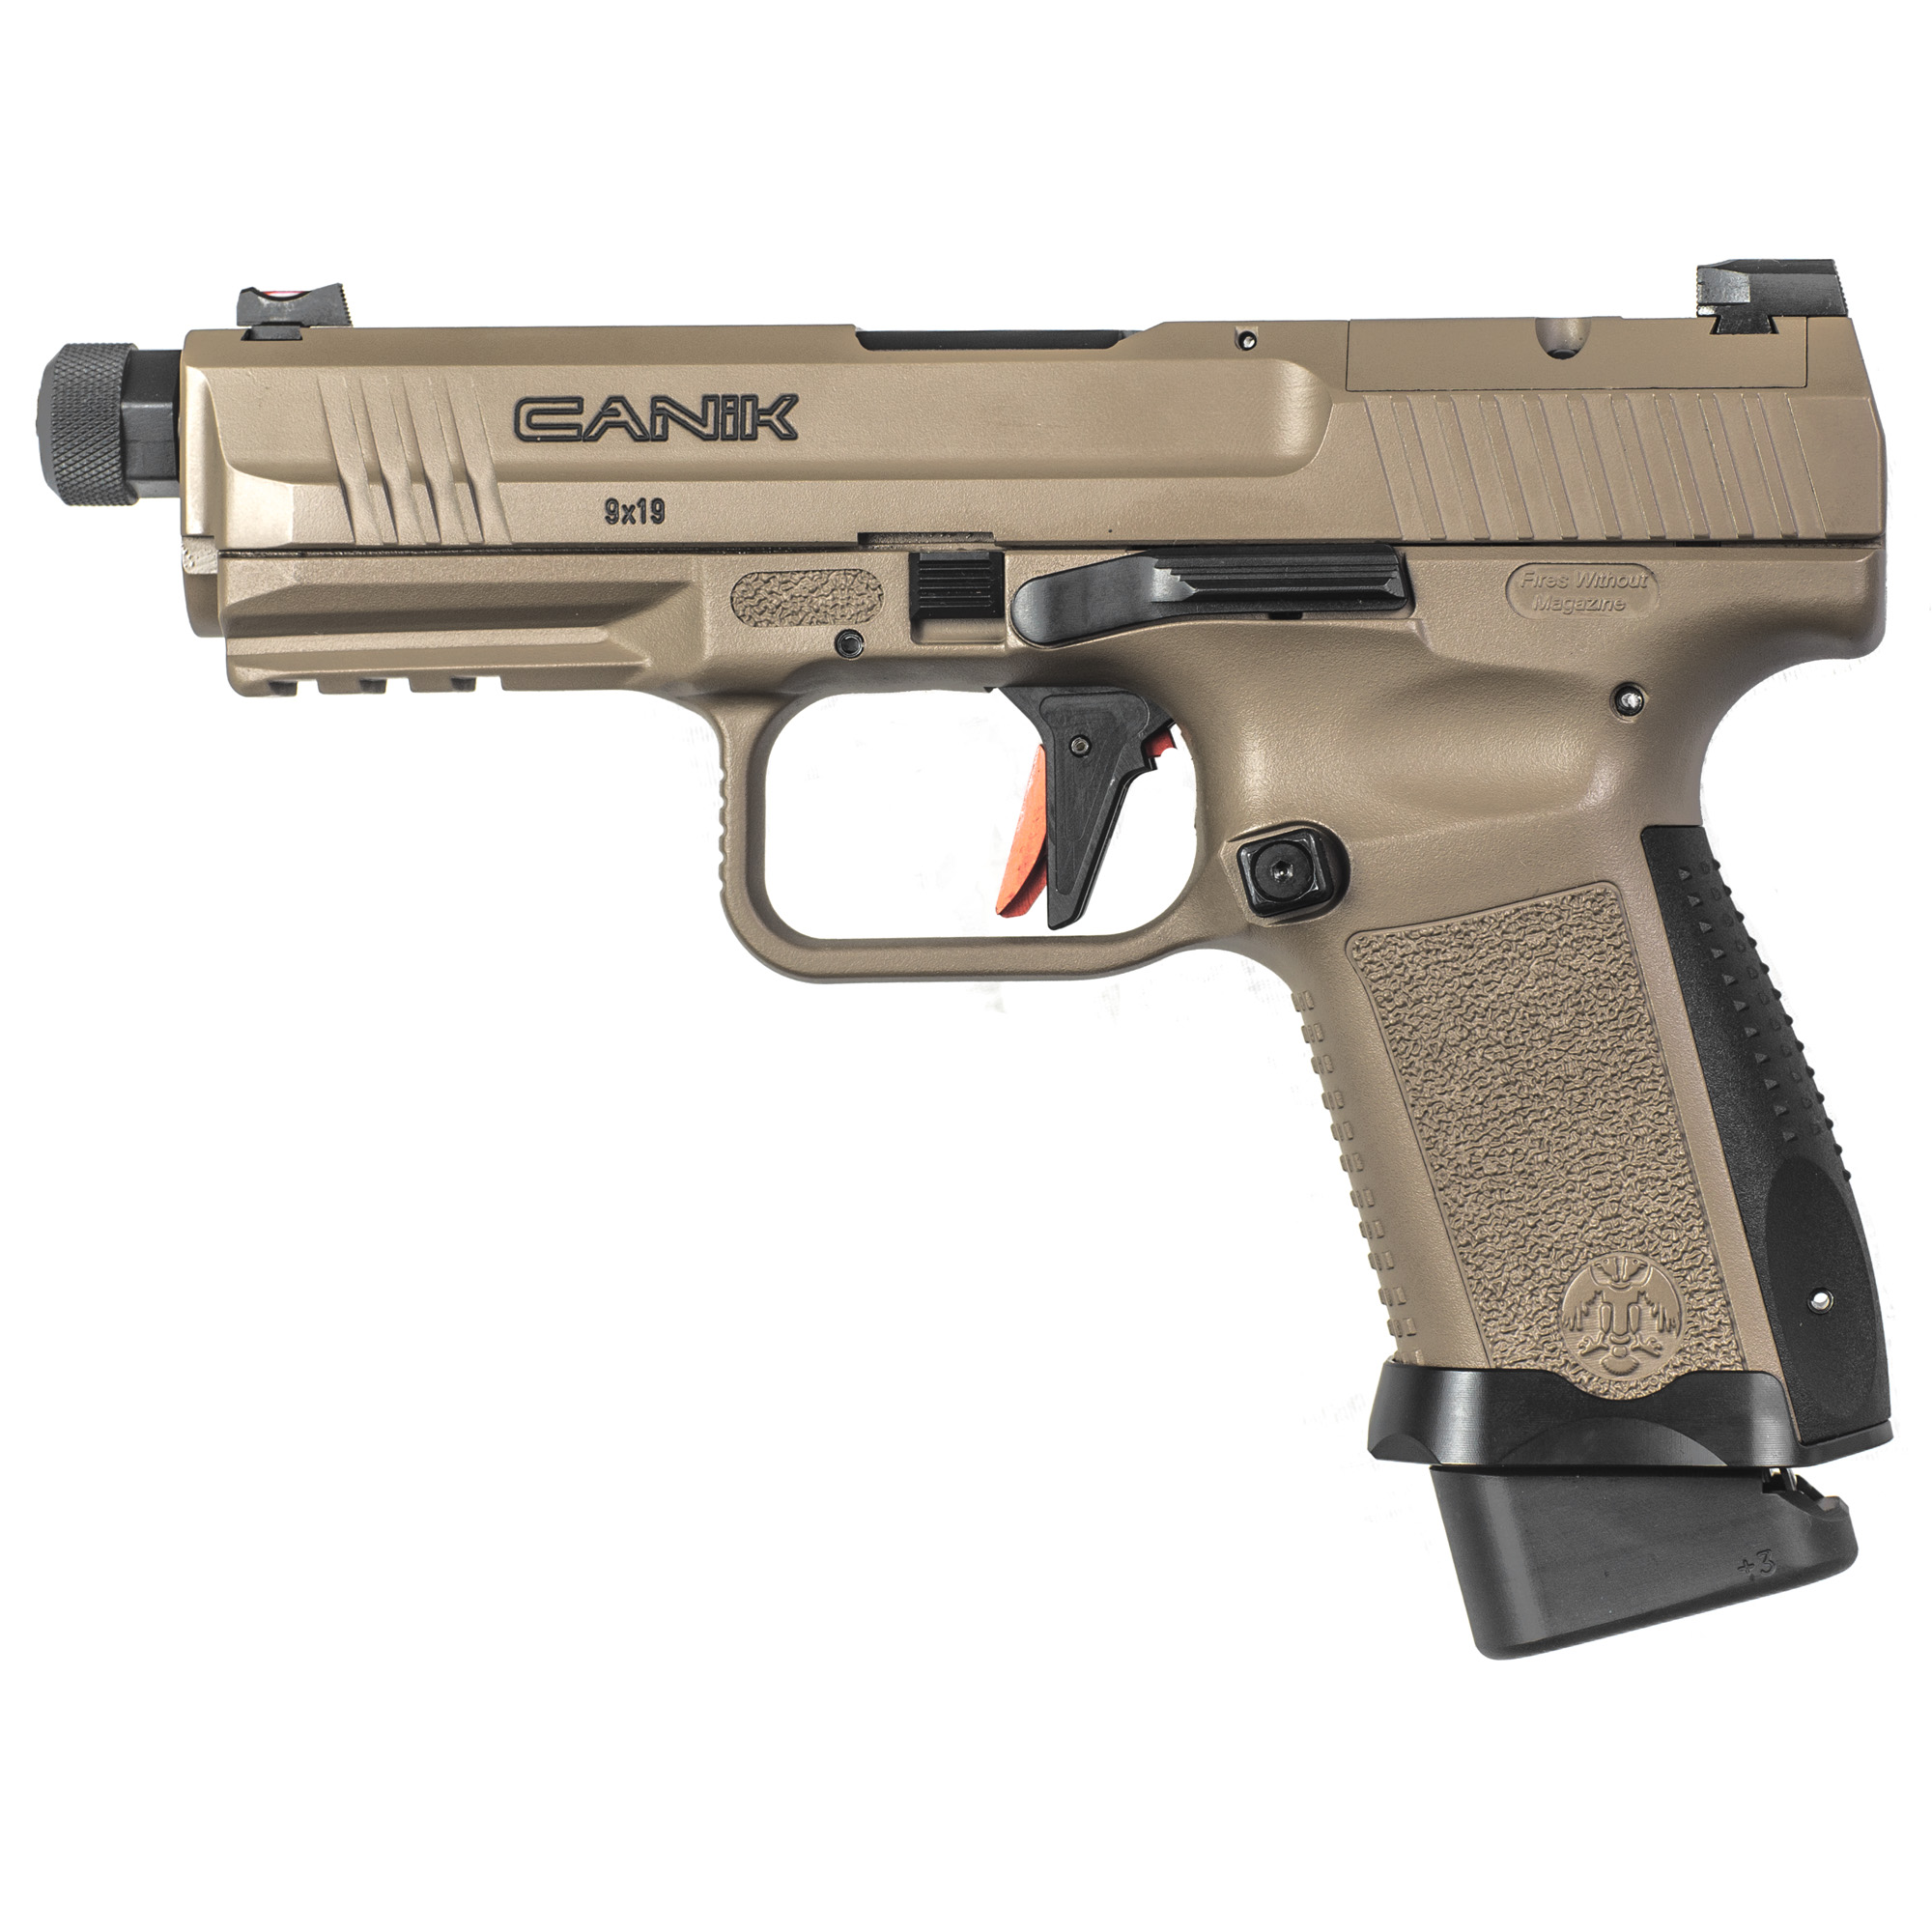 The TP9 Elite Combat represents a whole new generation of Canik handguns. Every TP9EC comes standard with performance upgrades designed by Salient Arms International.